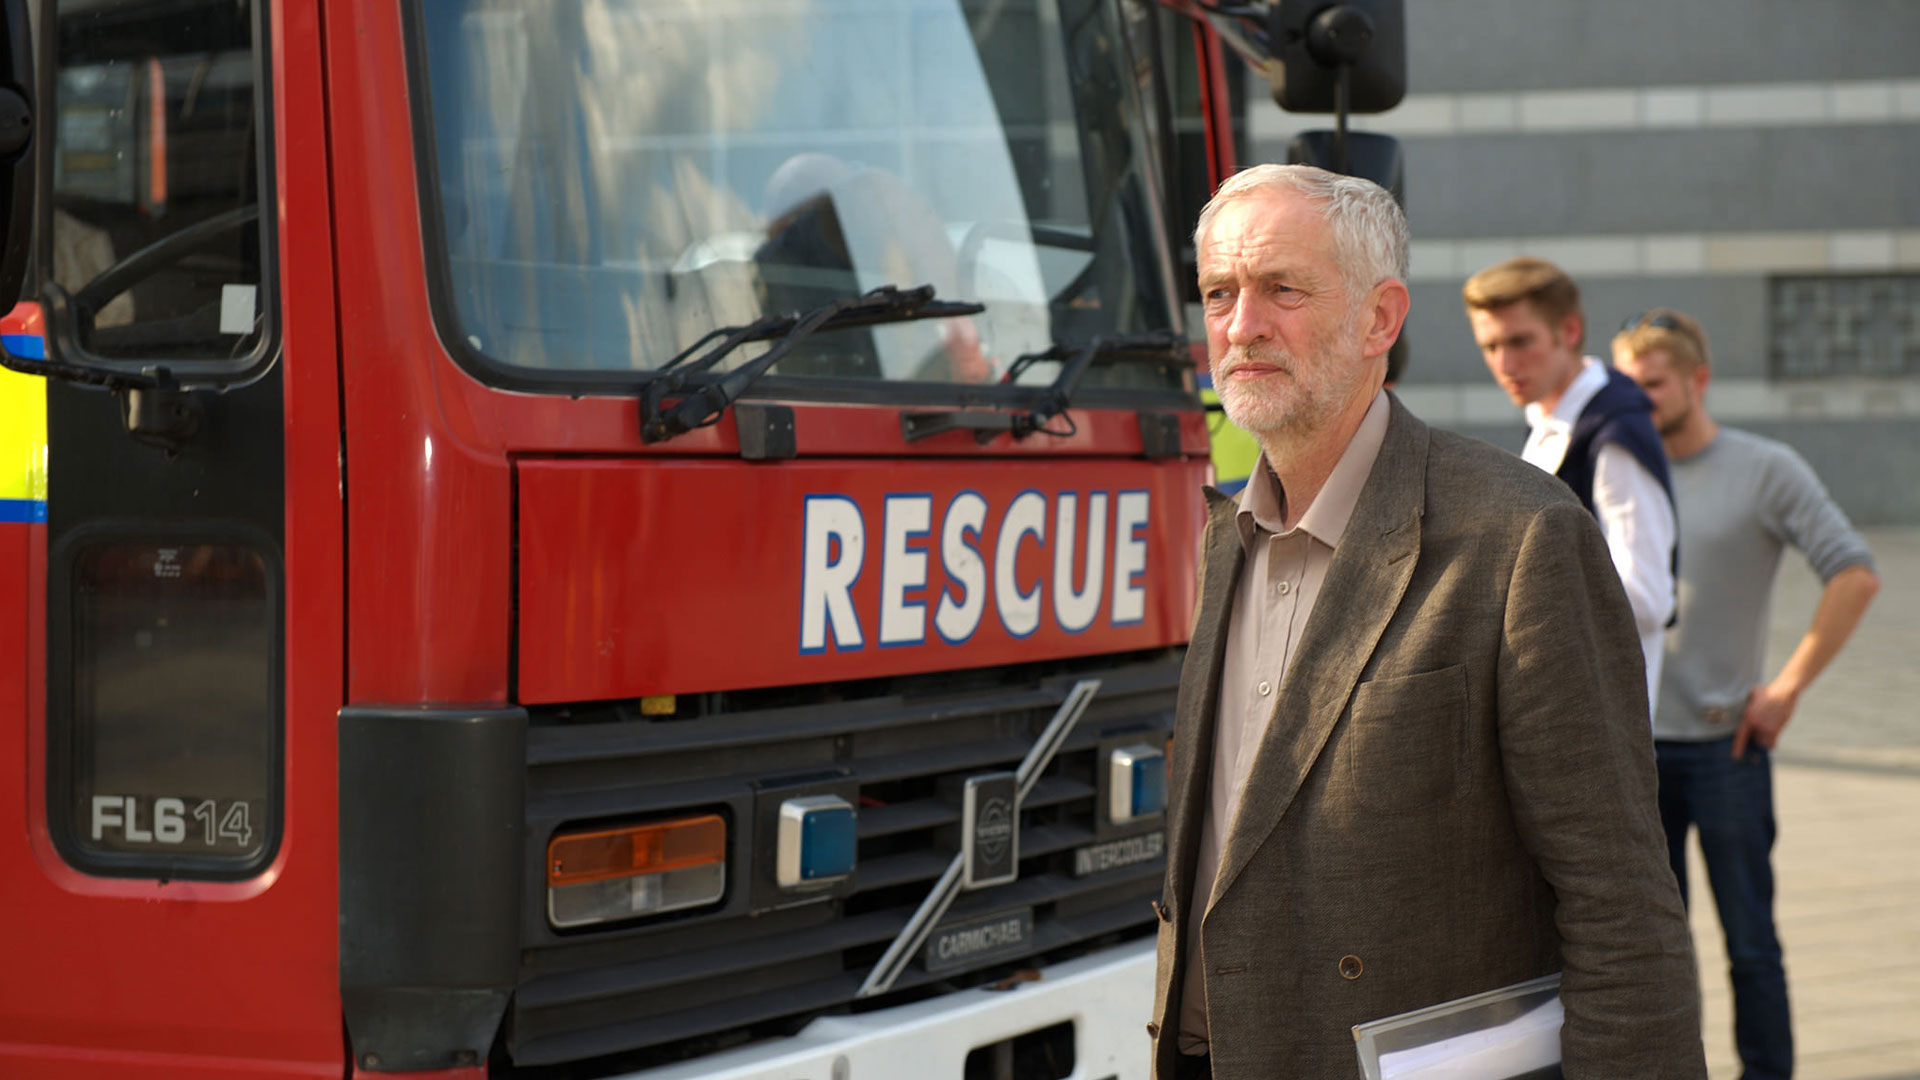 Photo of Jeremy Corbyn stood next to a fire engine with 'Rescue' on the front